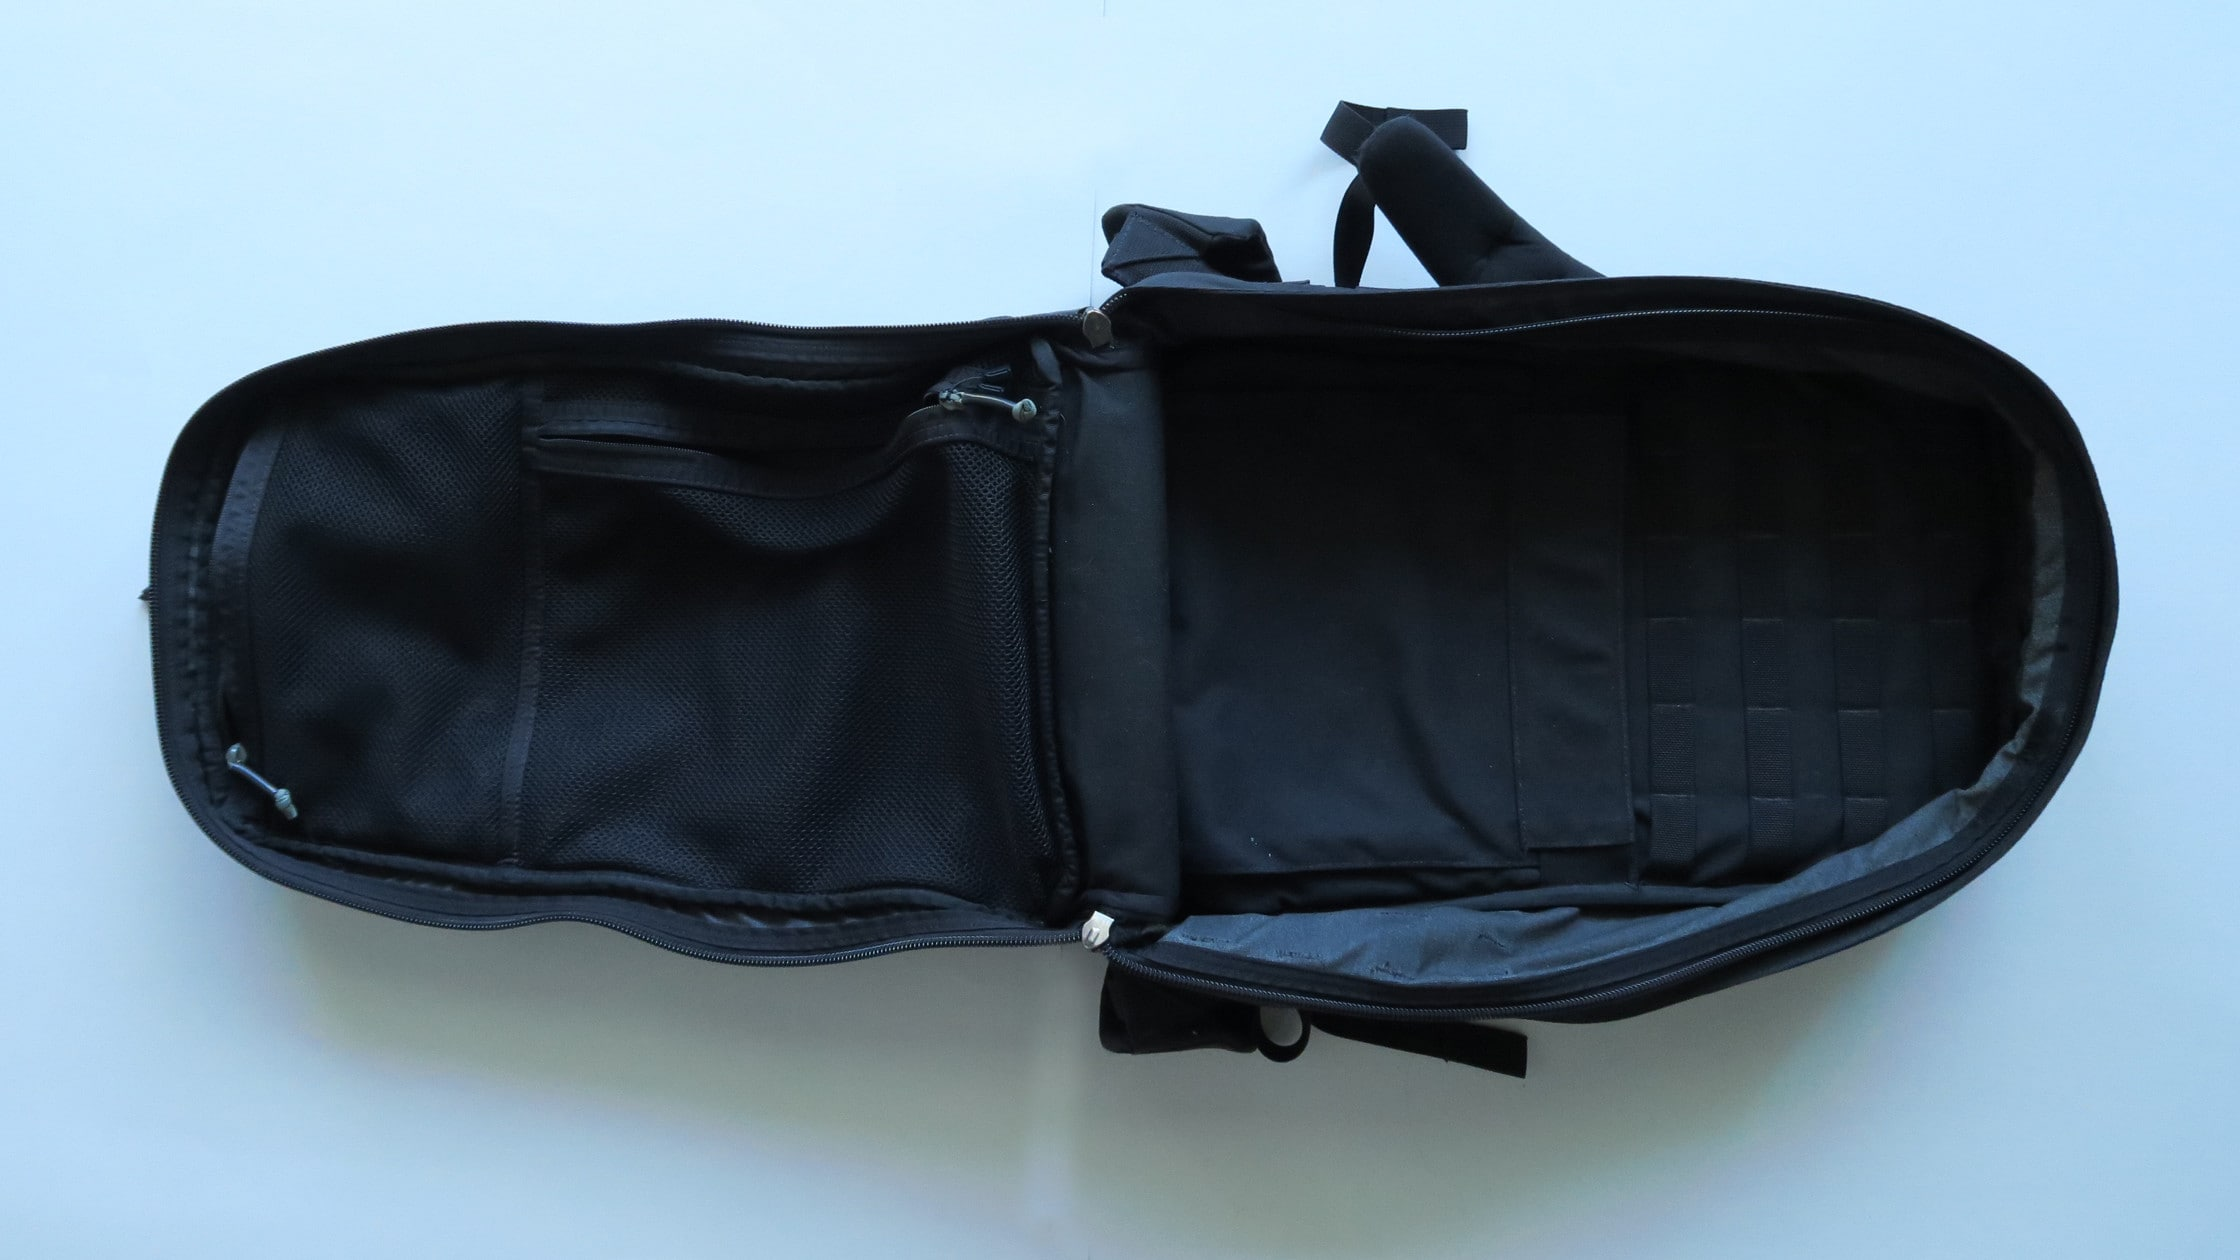 GORUCK GR2 Main Compartment